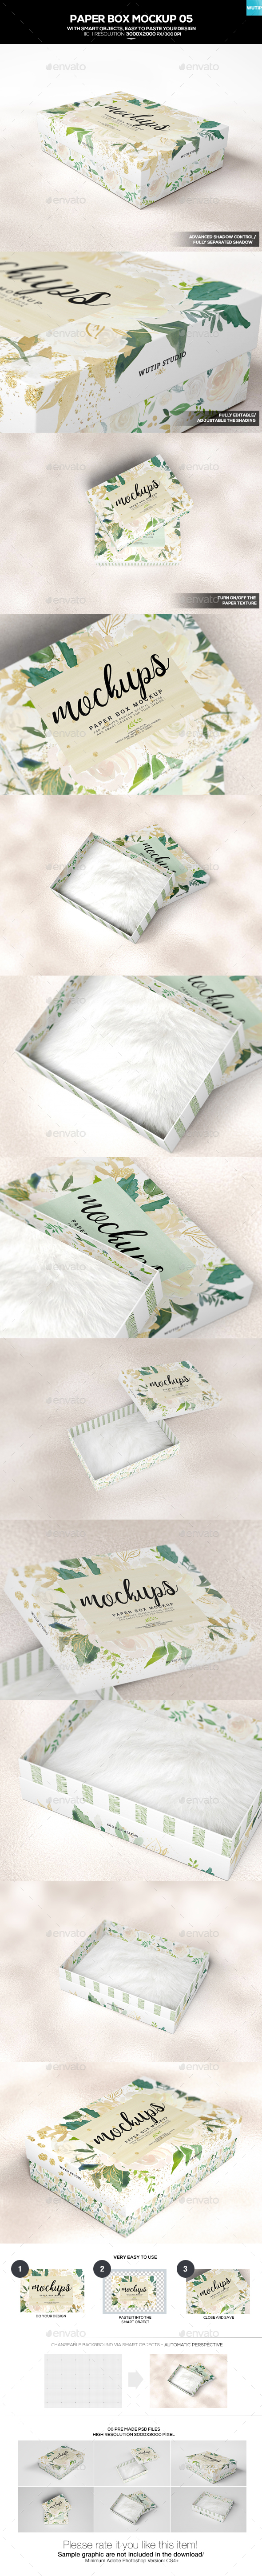 Paper Box Mockup 05 - Miscellaneous Packaging